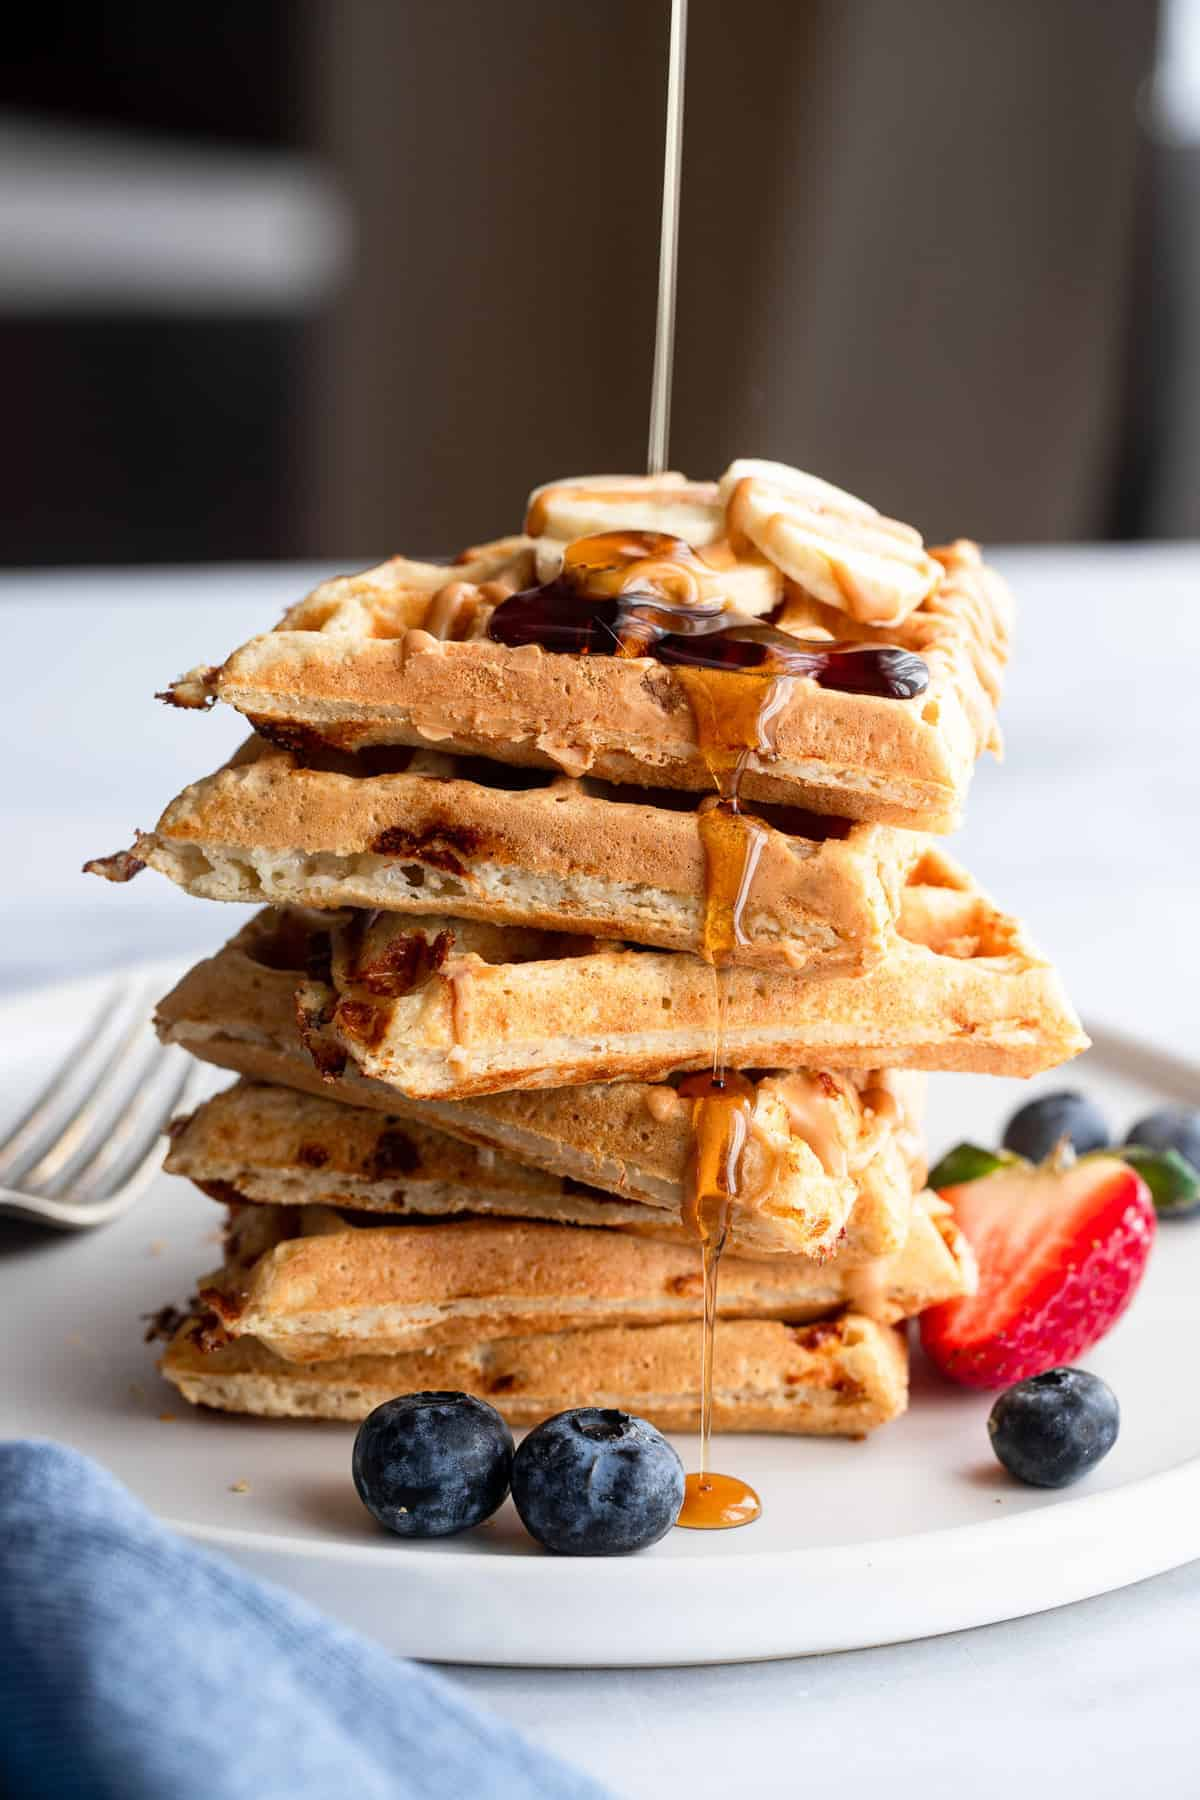 a stack of protein waffles drizzled with maple syrup